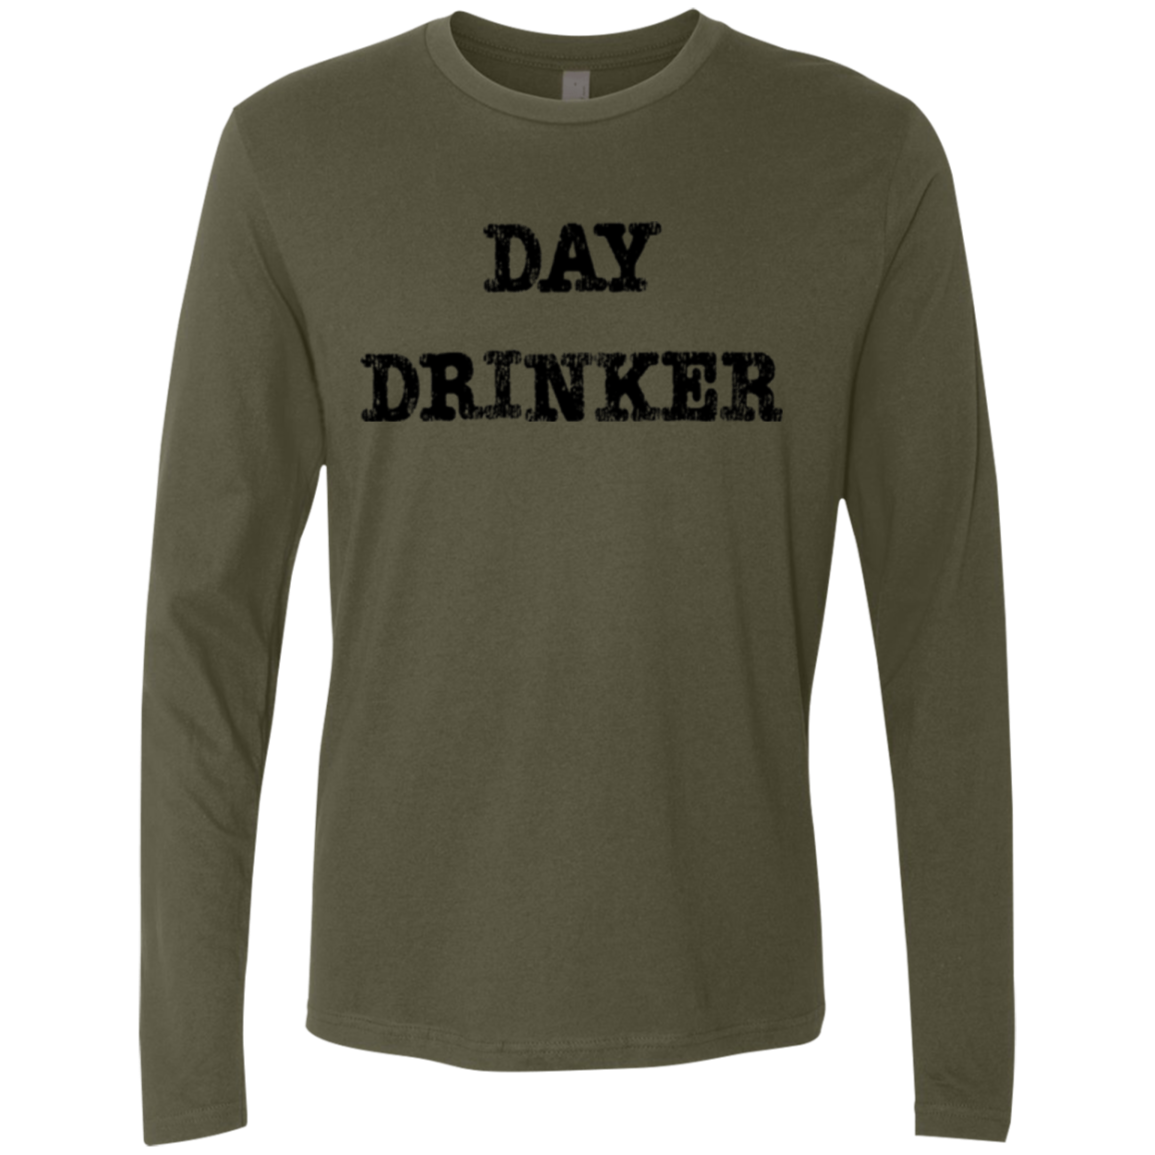 Day Drinker Men's Long Sleeve Tee - Trendy Tees